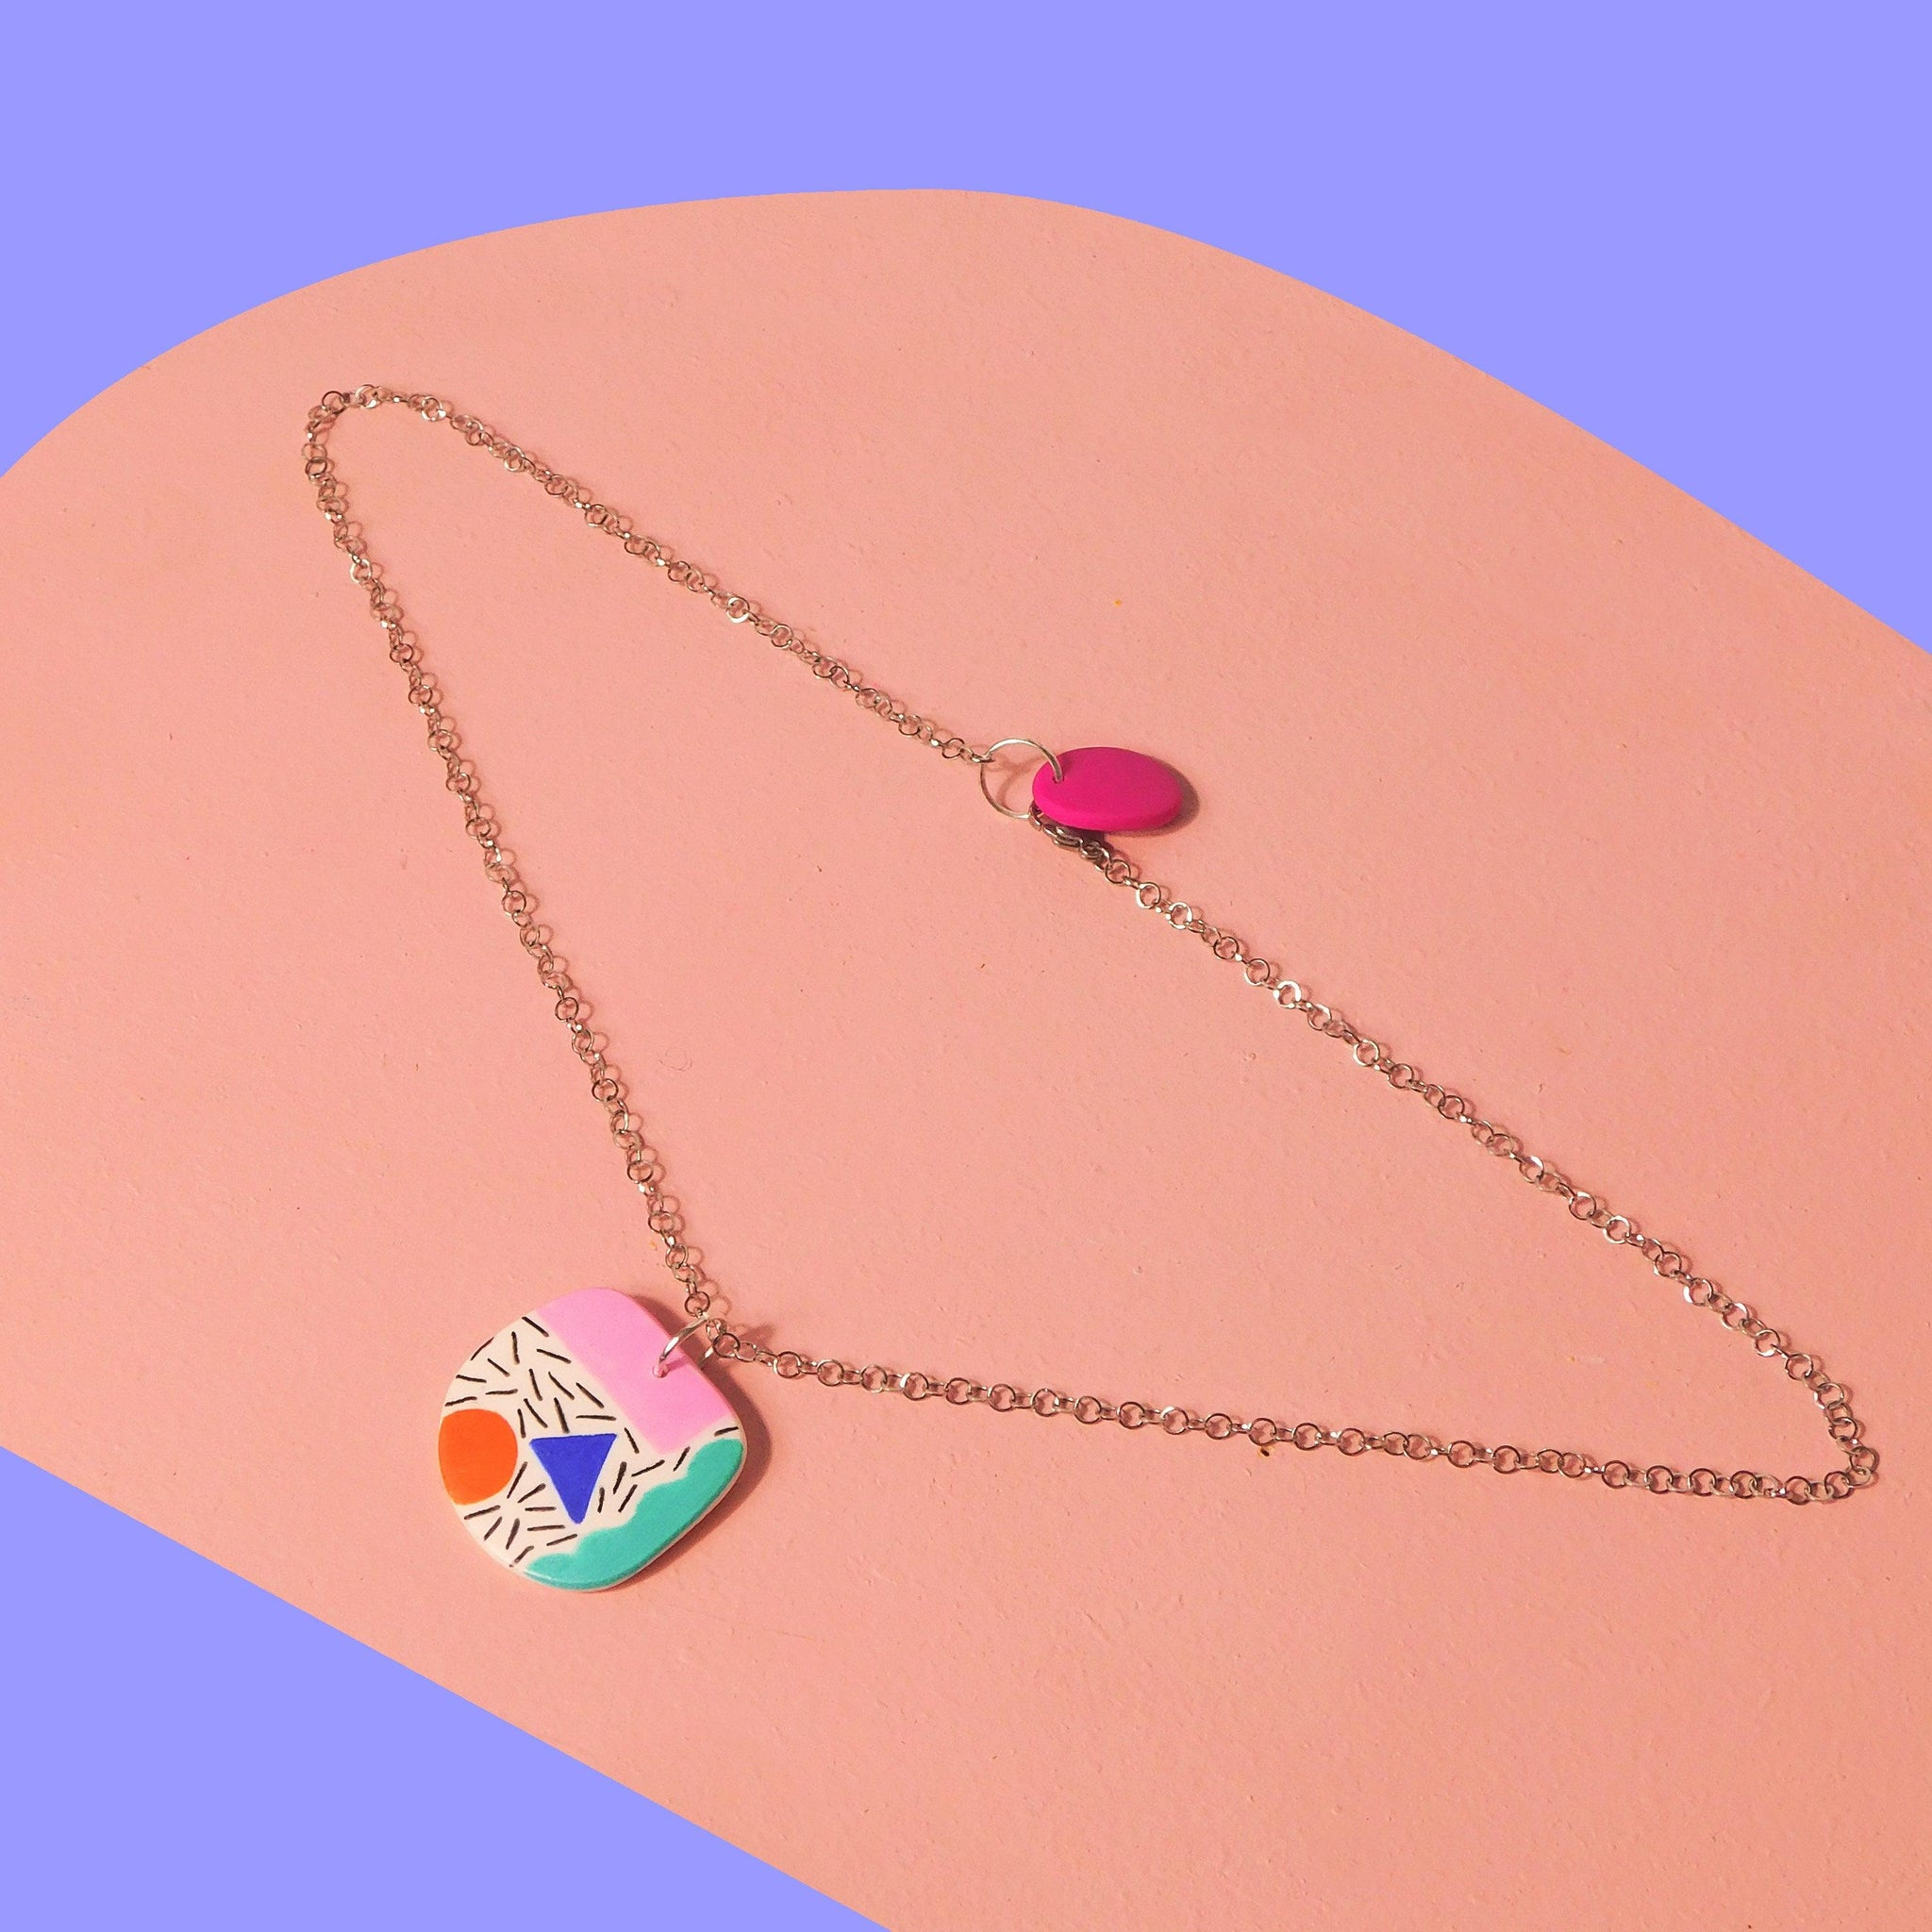 bamba-bamba - SUERTE NECKLACE - Bamba Bamba Collective - NECKLACES